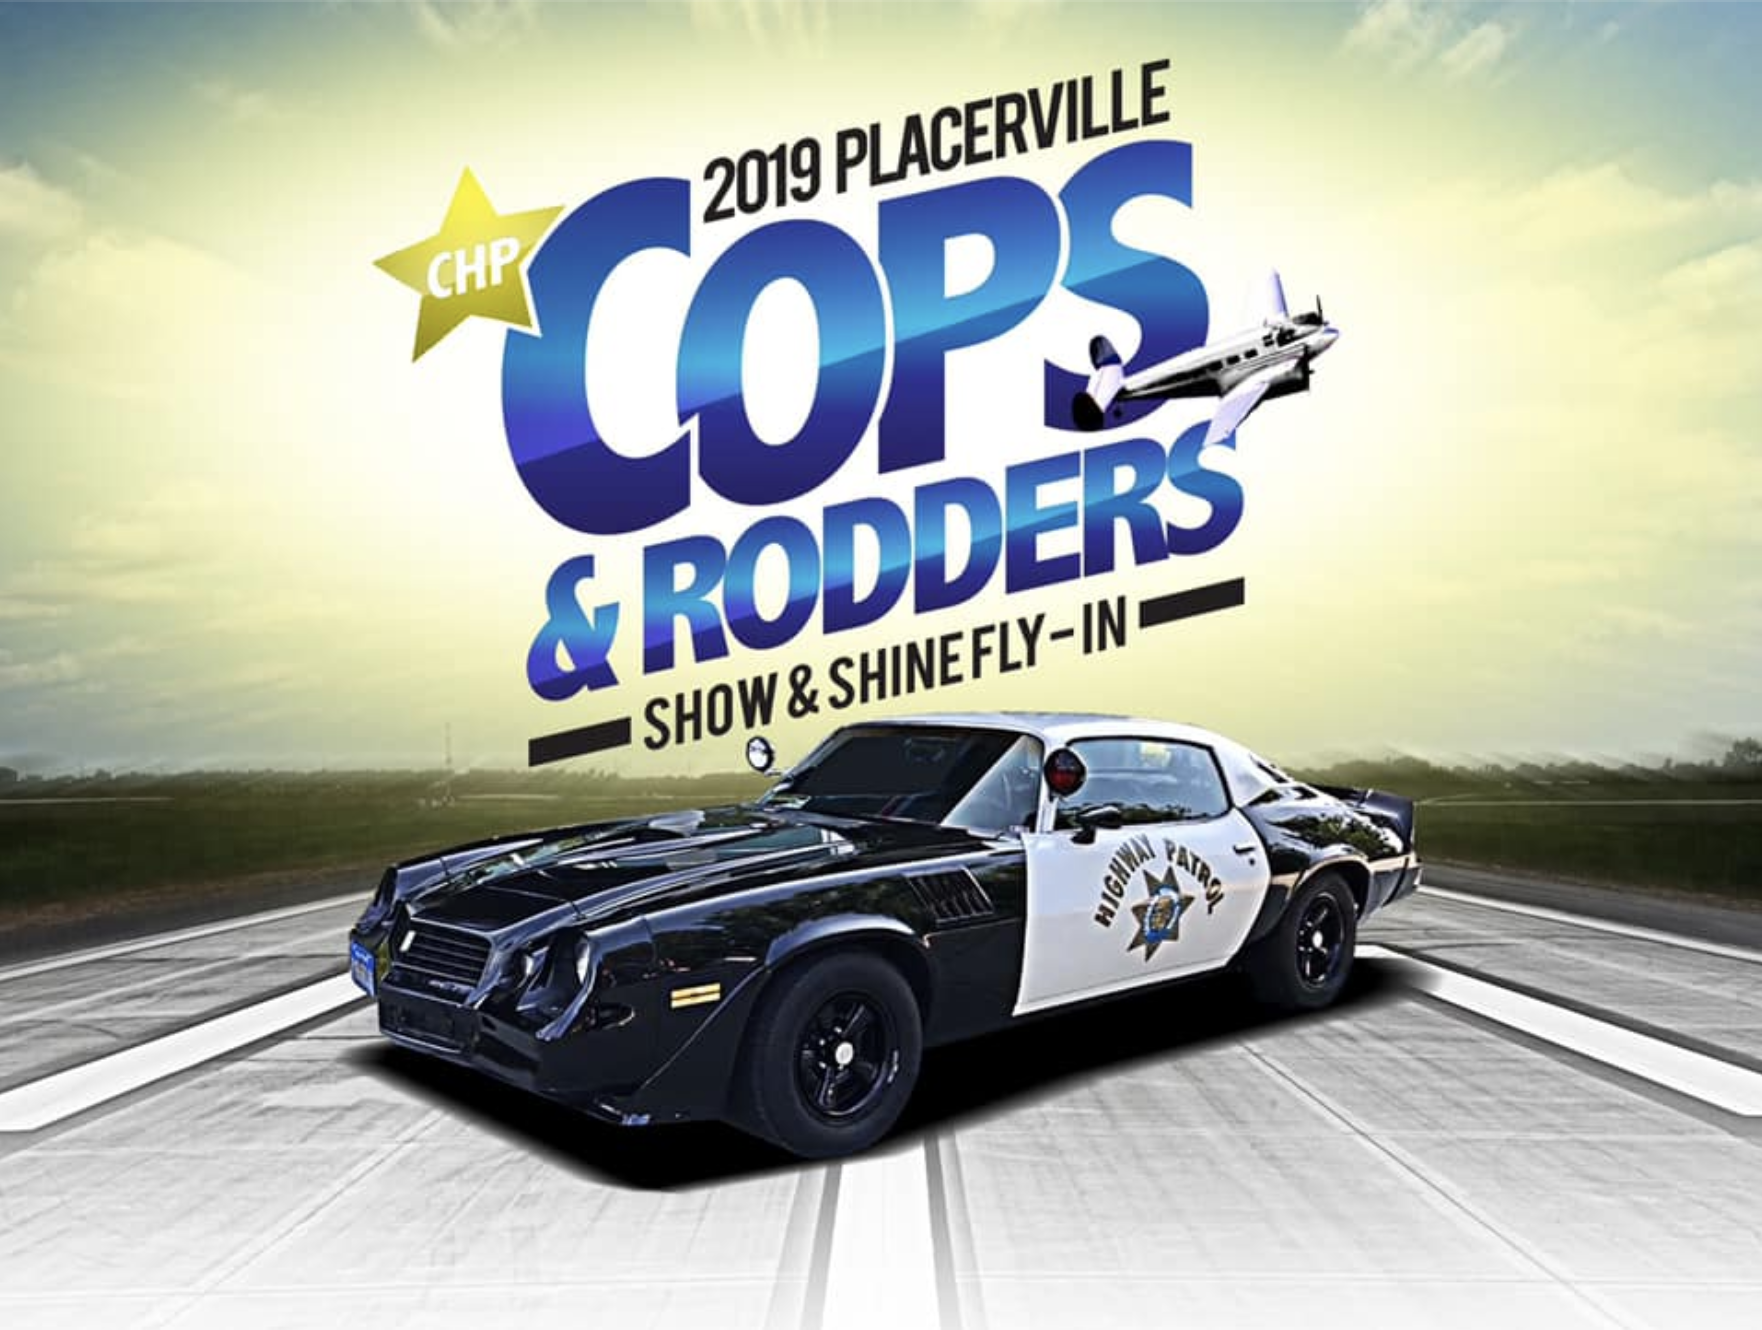 2019-placerville-cops-and-rodders-show-and-shine.png